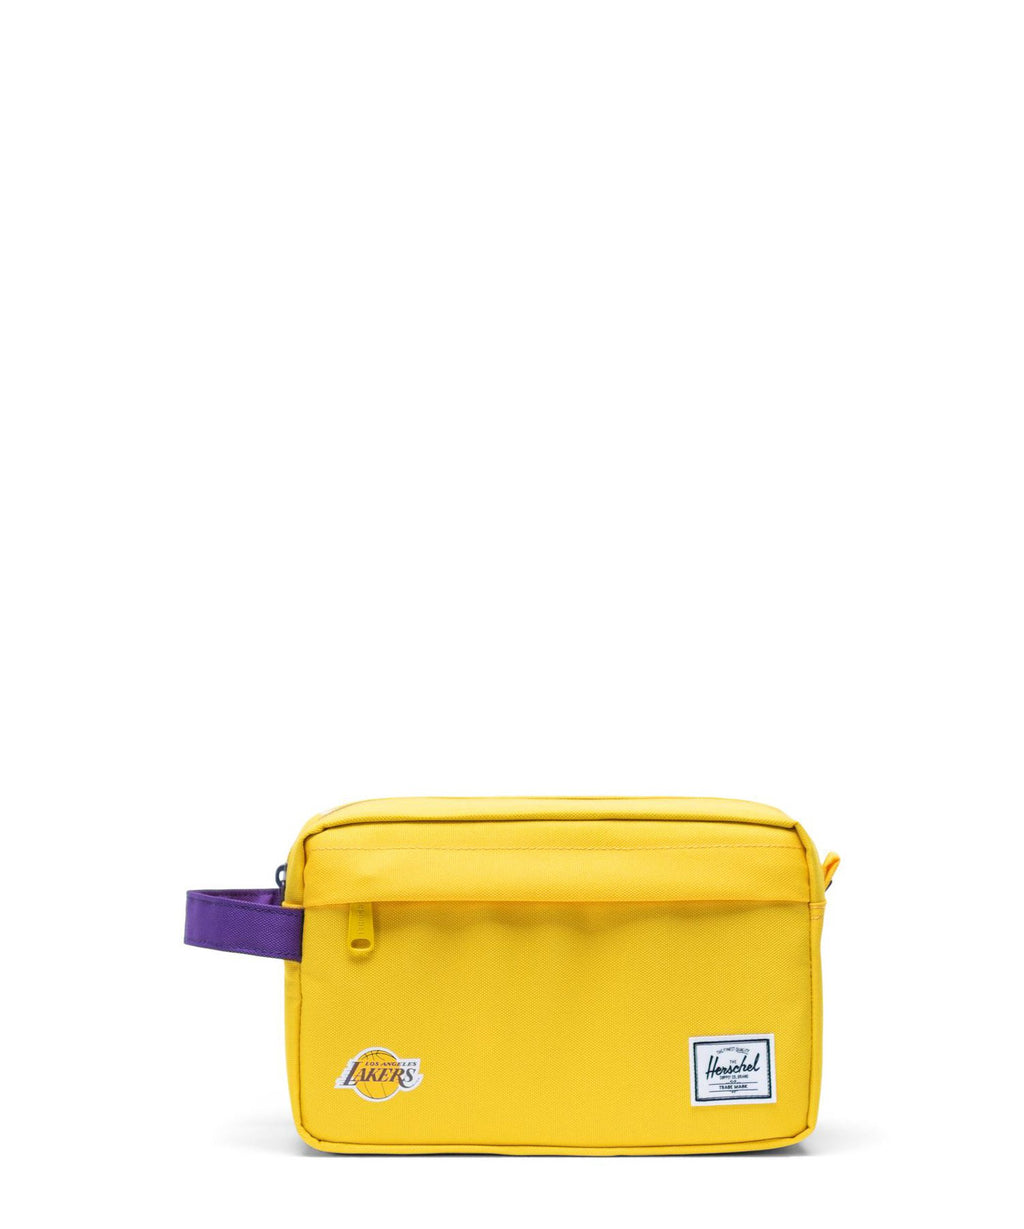 Los Angeles Lakers Chapter Organizer Bag Gold/Purple